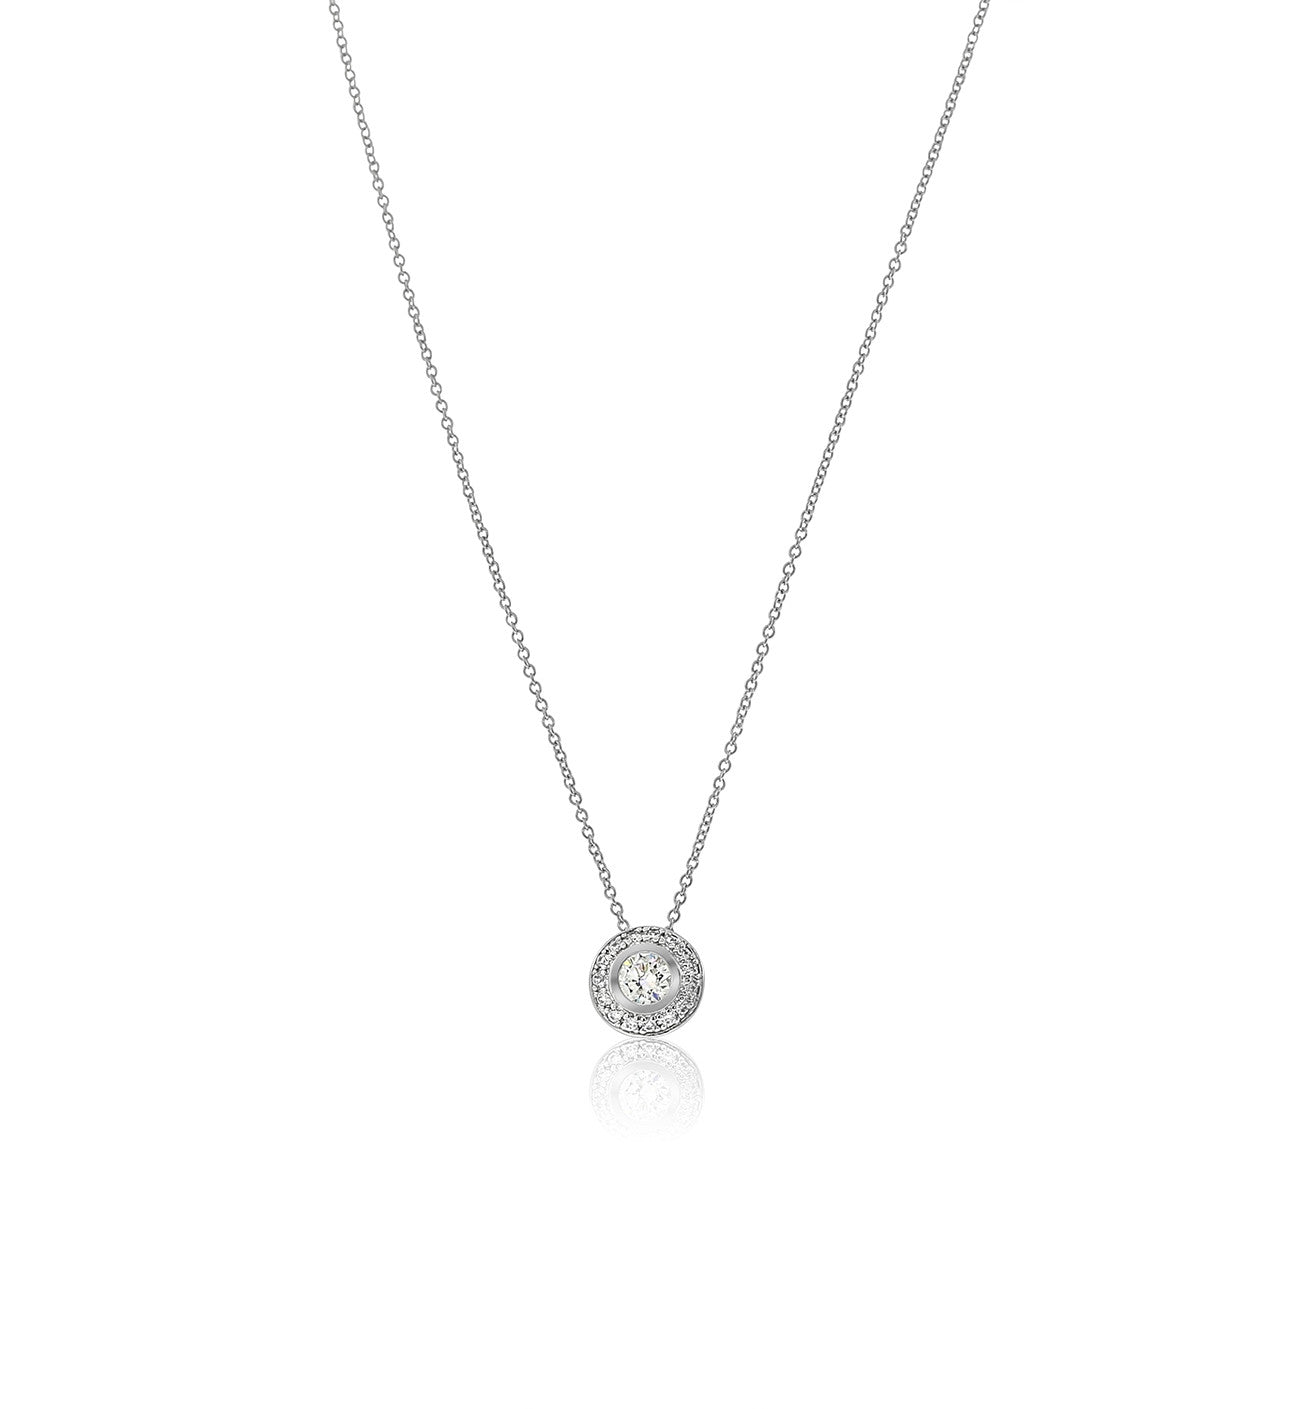 davies necklace set in product edwards rolo on solitaire pendant white gold a chain bezel diamond